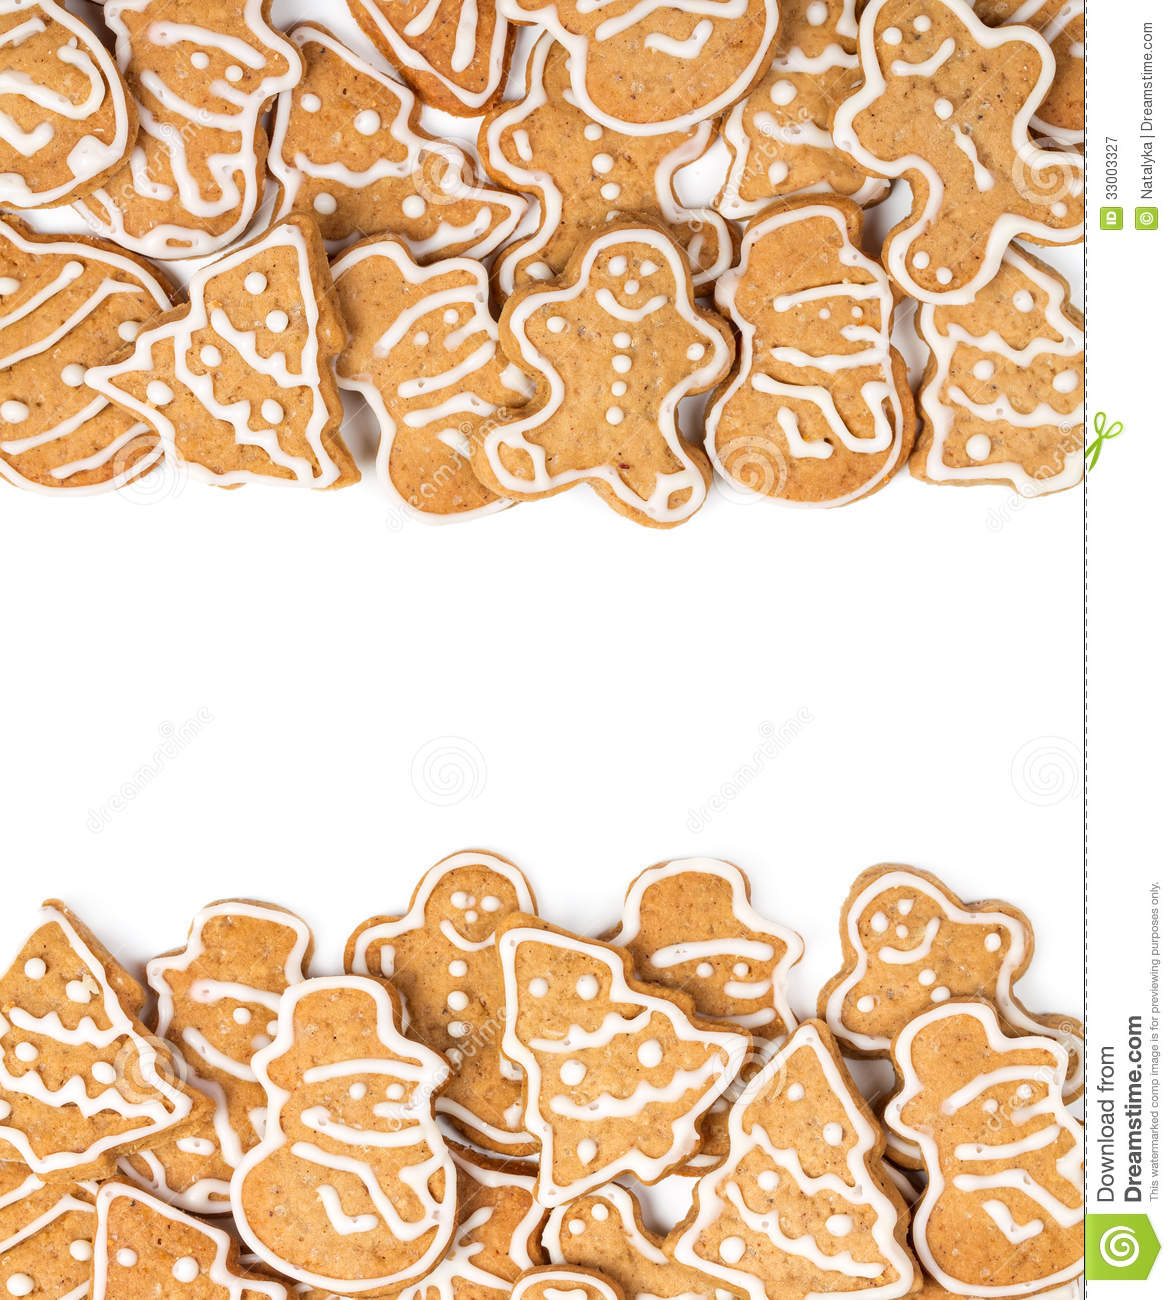 Christmas Cookies On A White Background Stock Image - Image of sweet ...